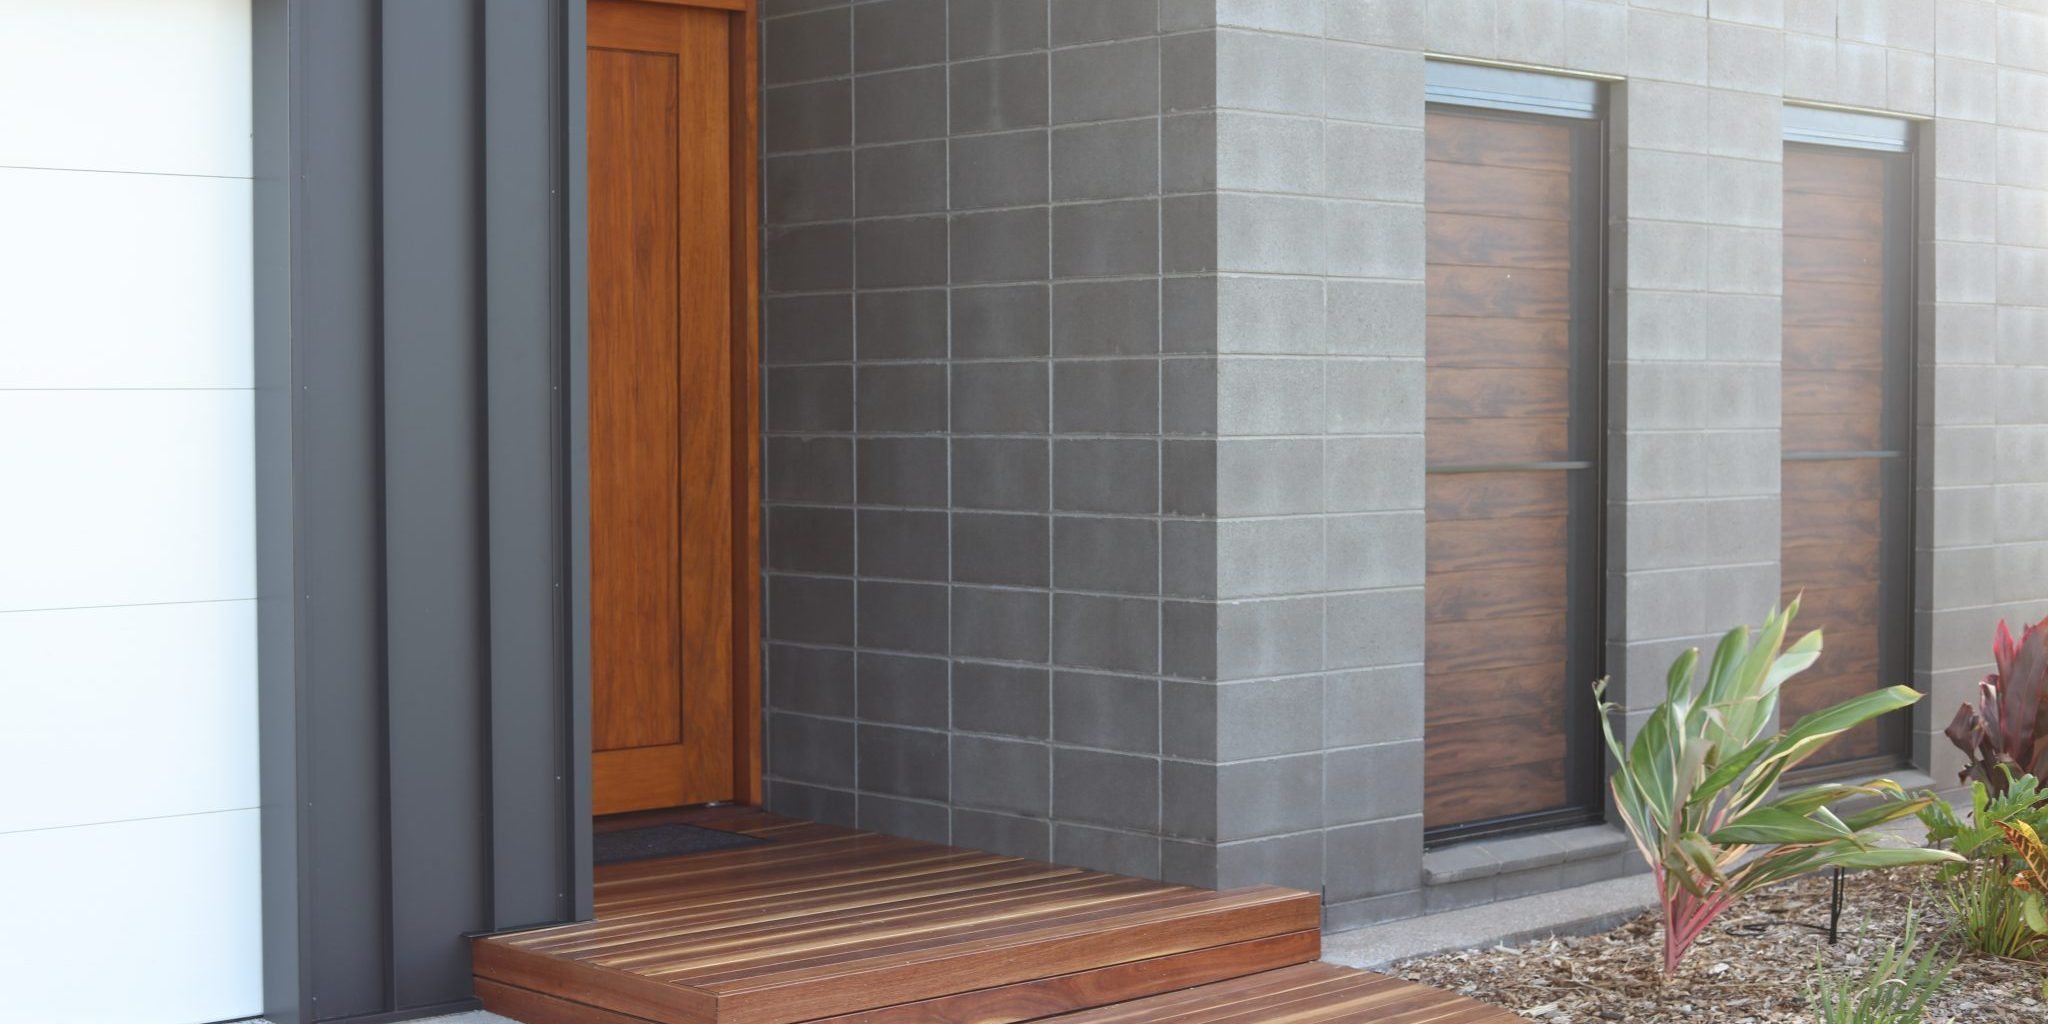 Smooth_Charcoal_Masonry_completing_a_feature_entrance_wall_at_the_front_of_a_home_that_highlights_the_deep_timber_front_door_and_wooden_step